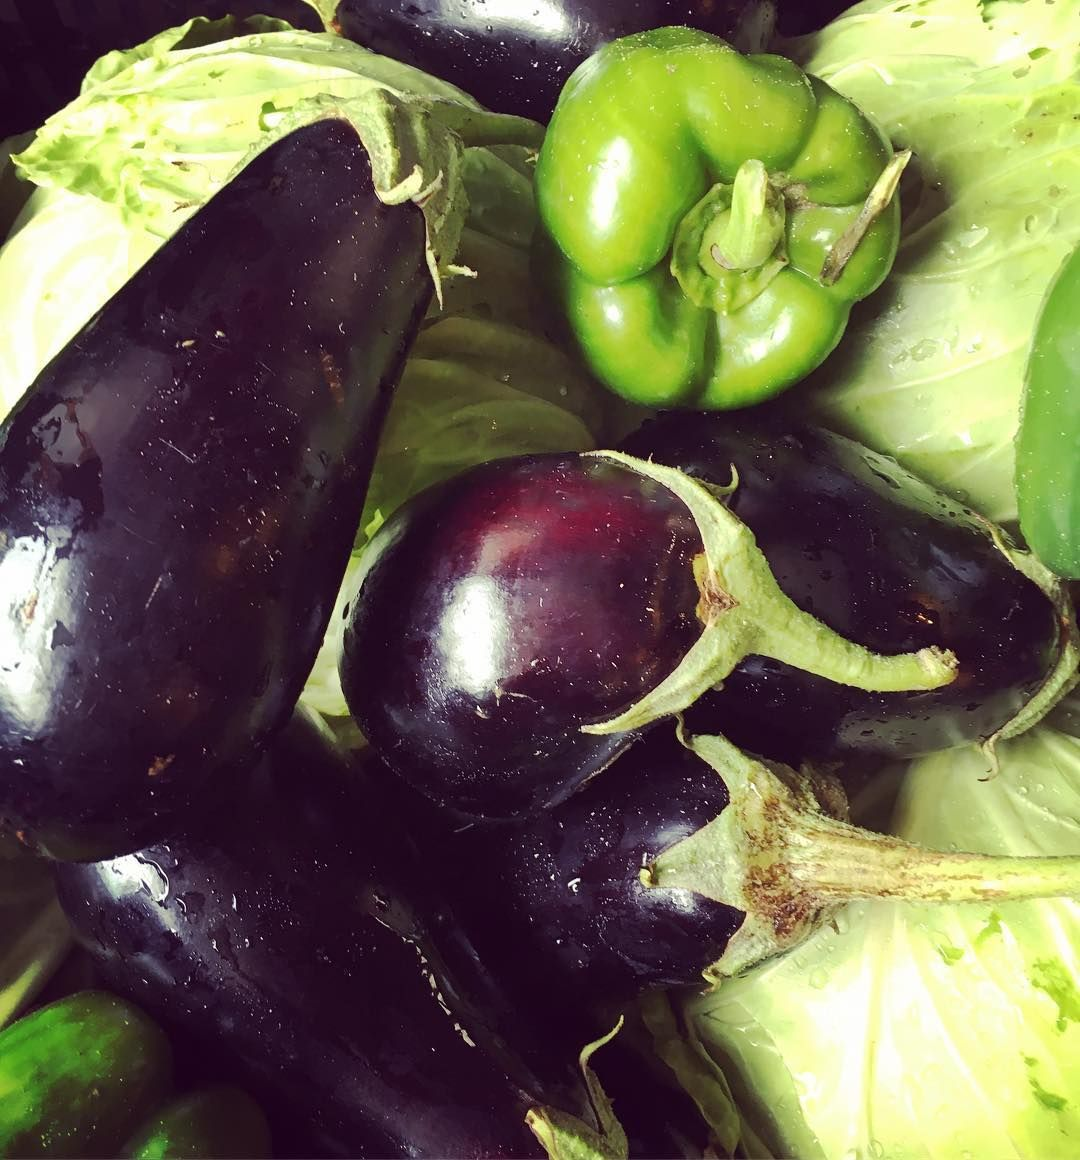 Hey Organic Bin Peeps the organic eggplant was a little on the small side this morning so we are adding an organic green pepper on us  enjoy